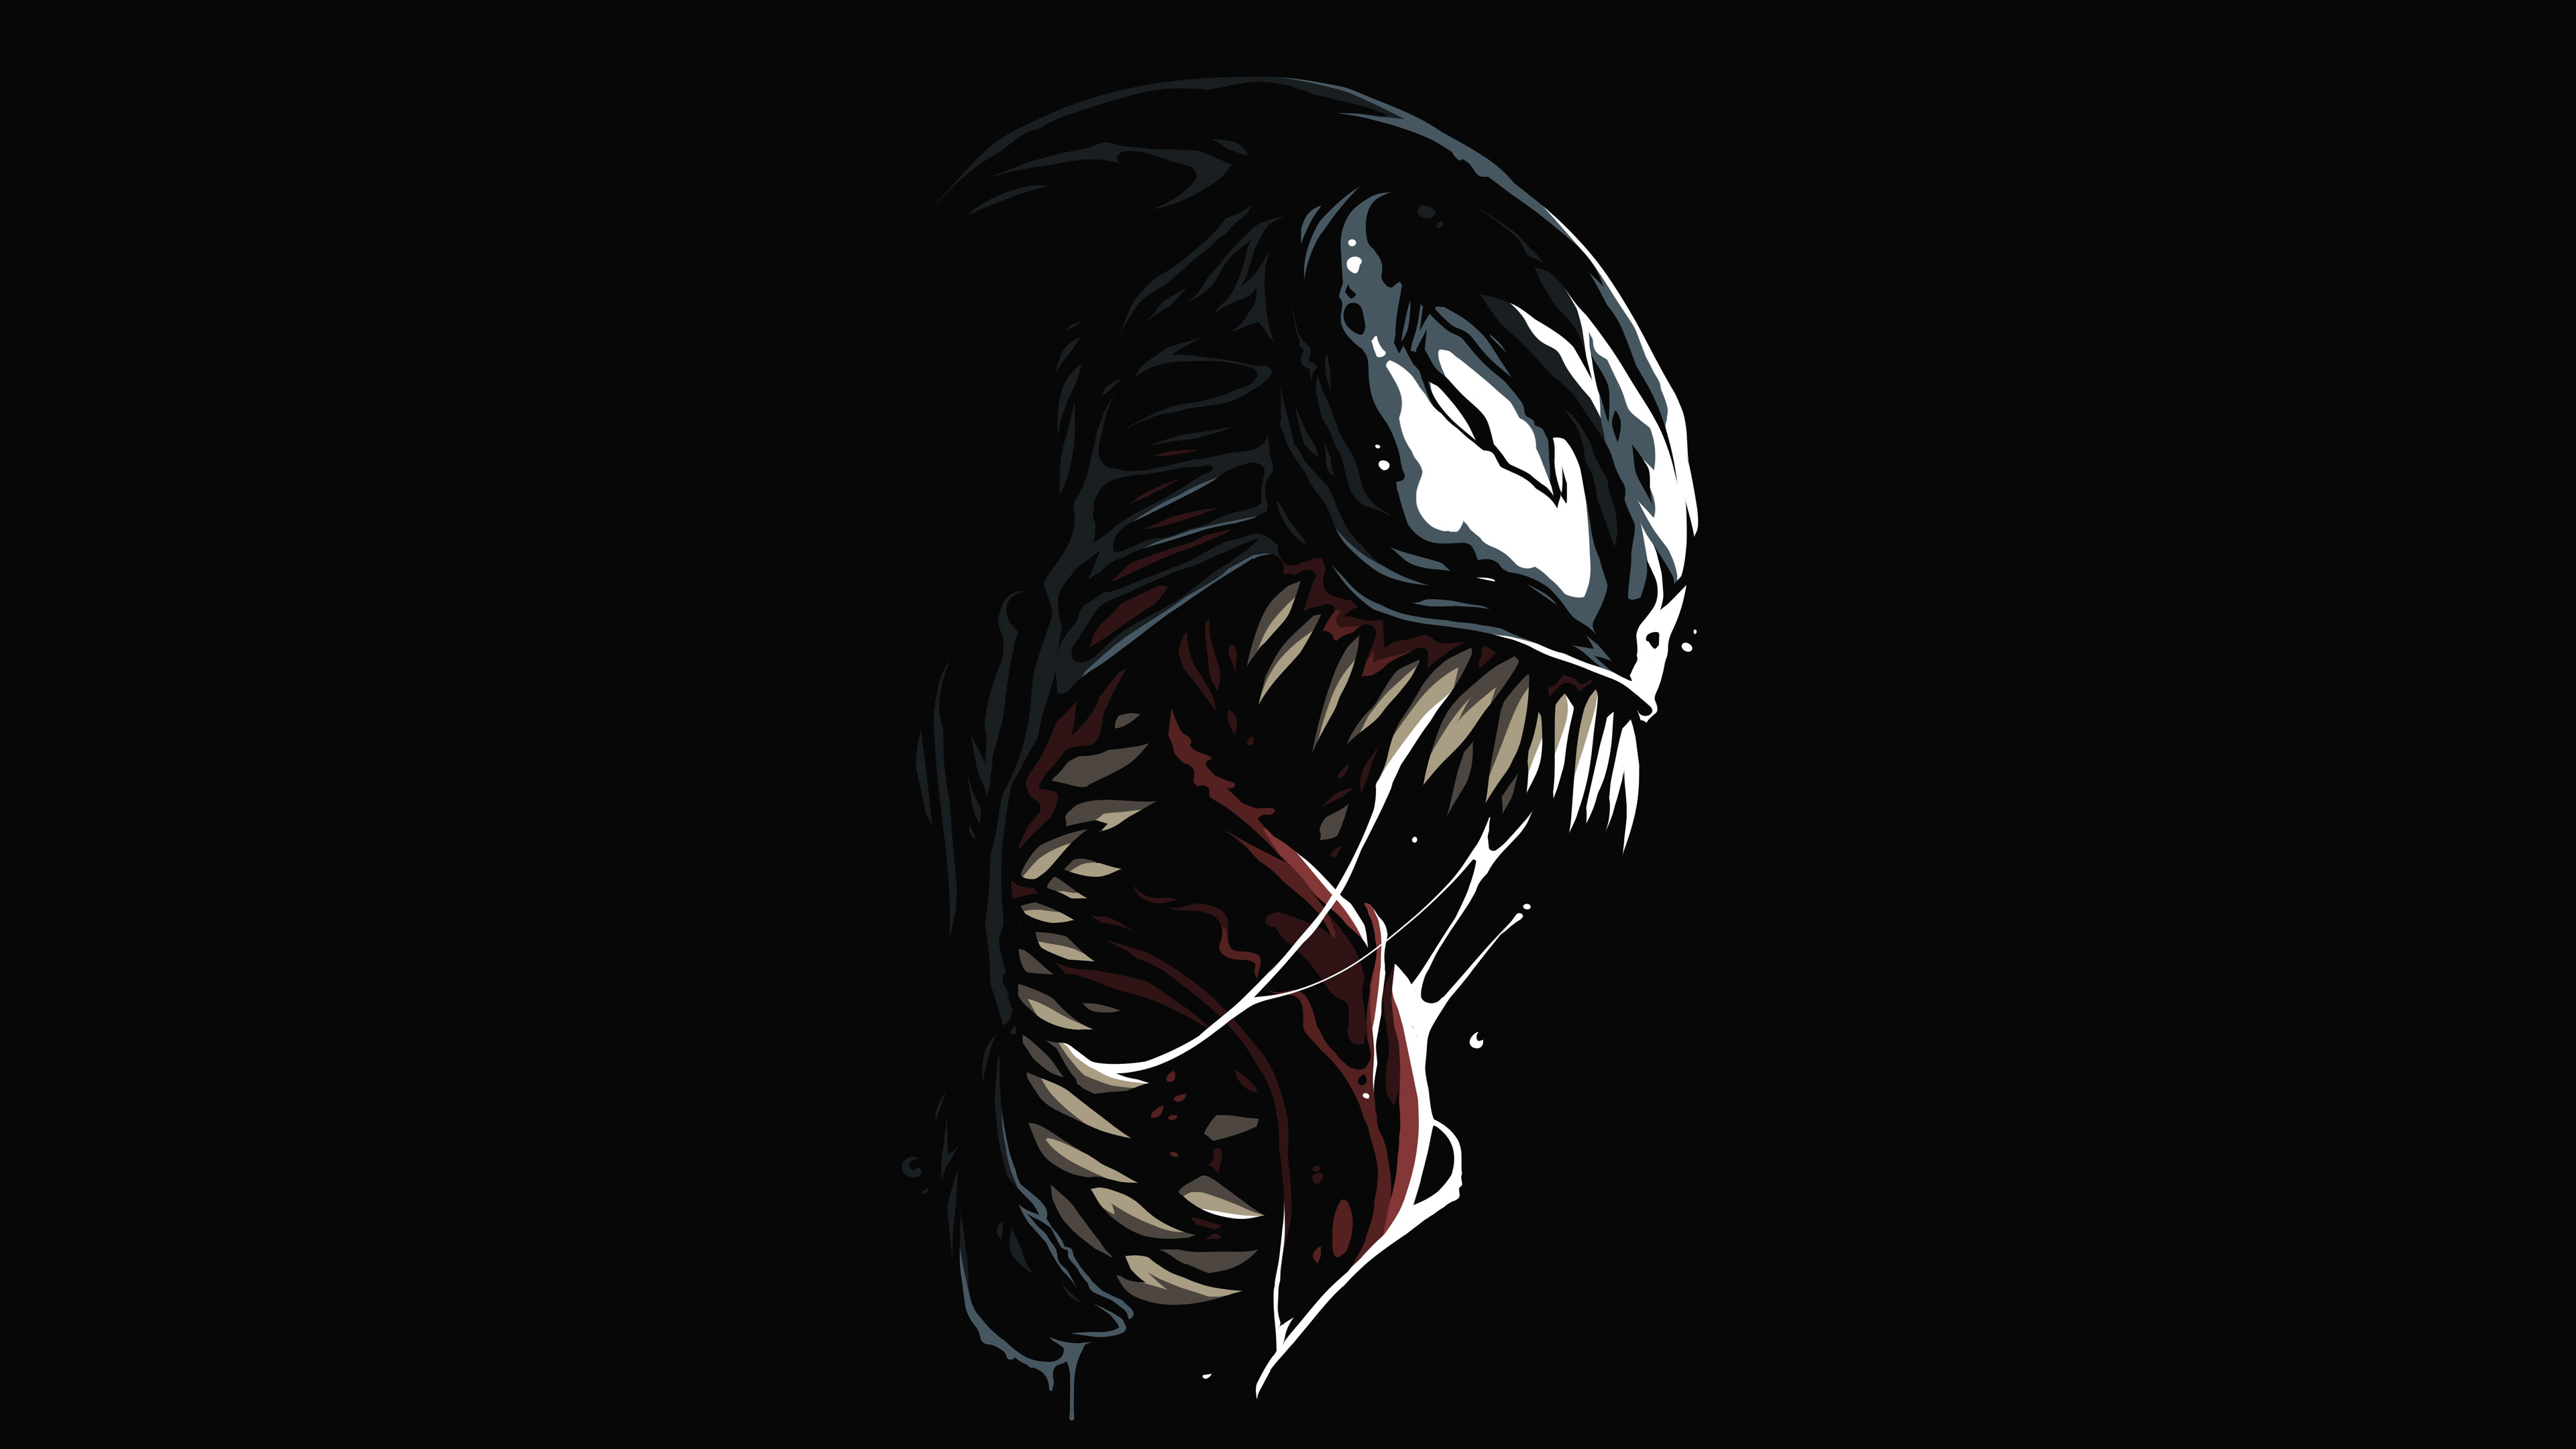 Venom Amoled 4k Hd Superheroes 4k Wallpapers Images Backgrounds Photos And Pictures